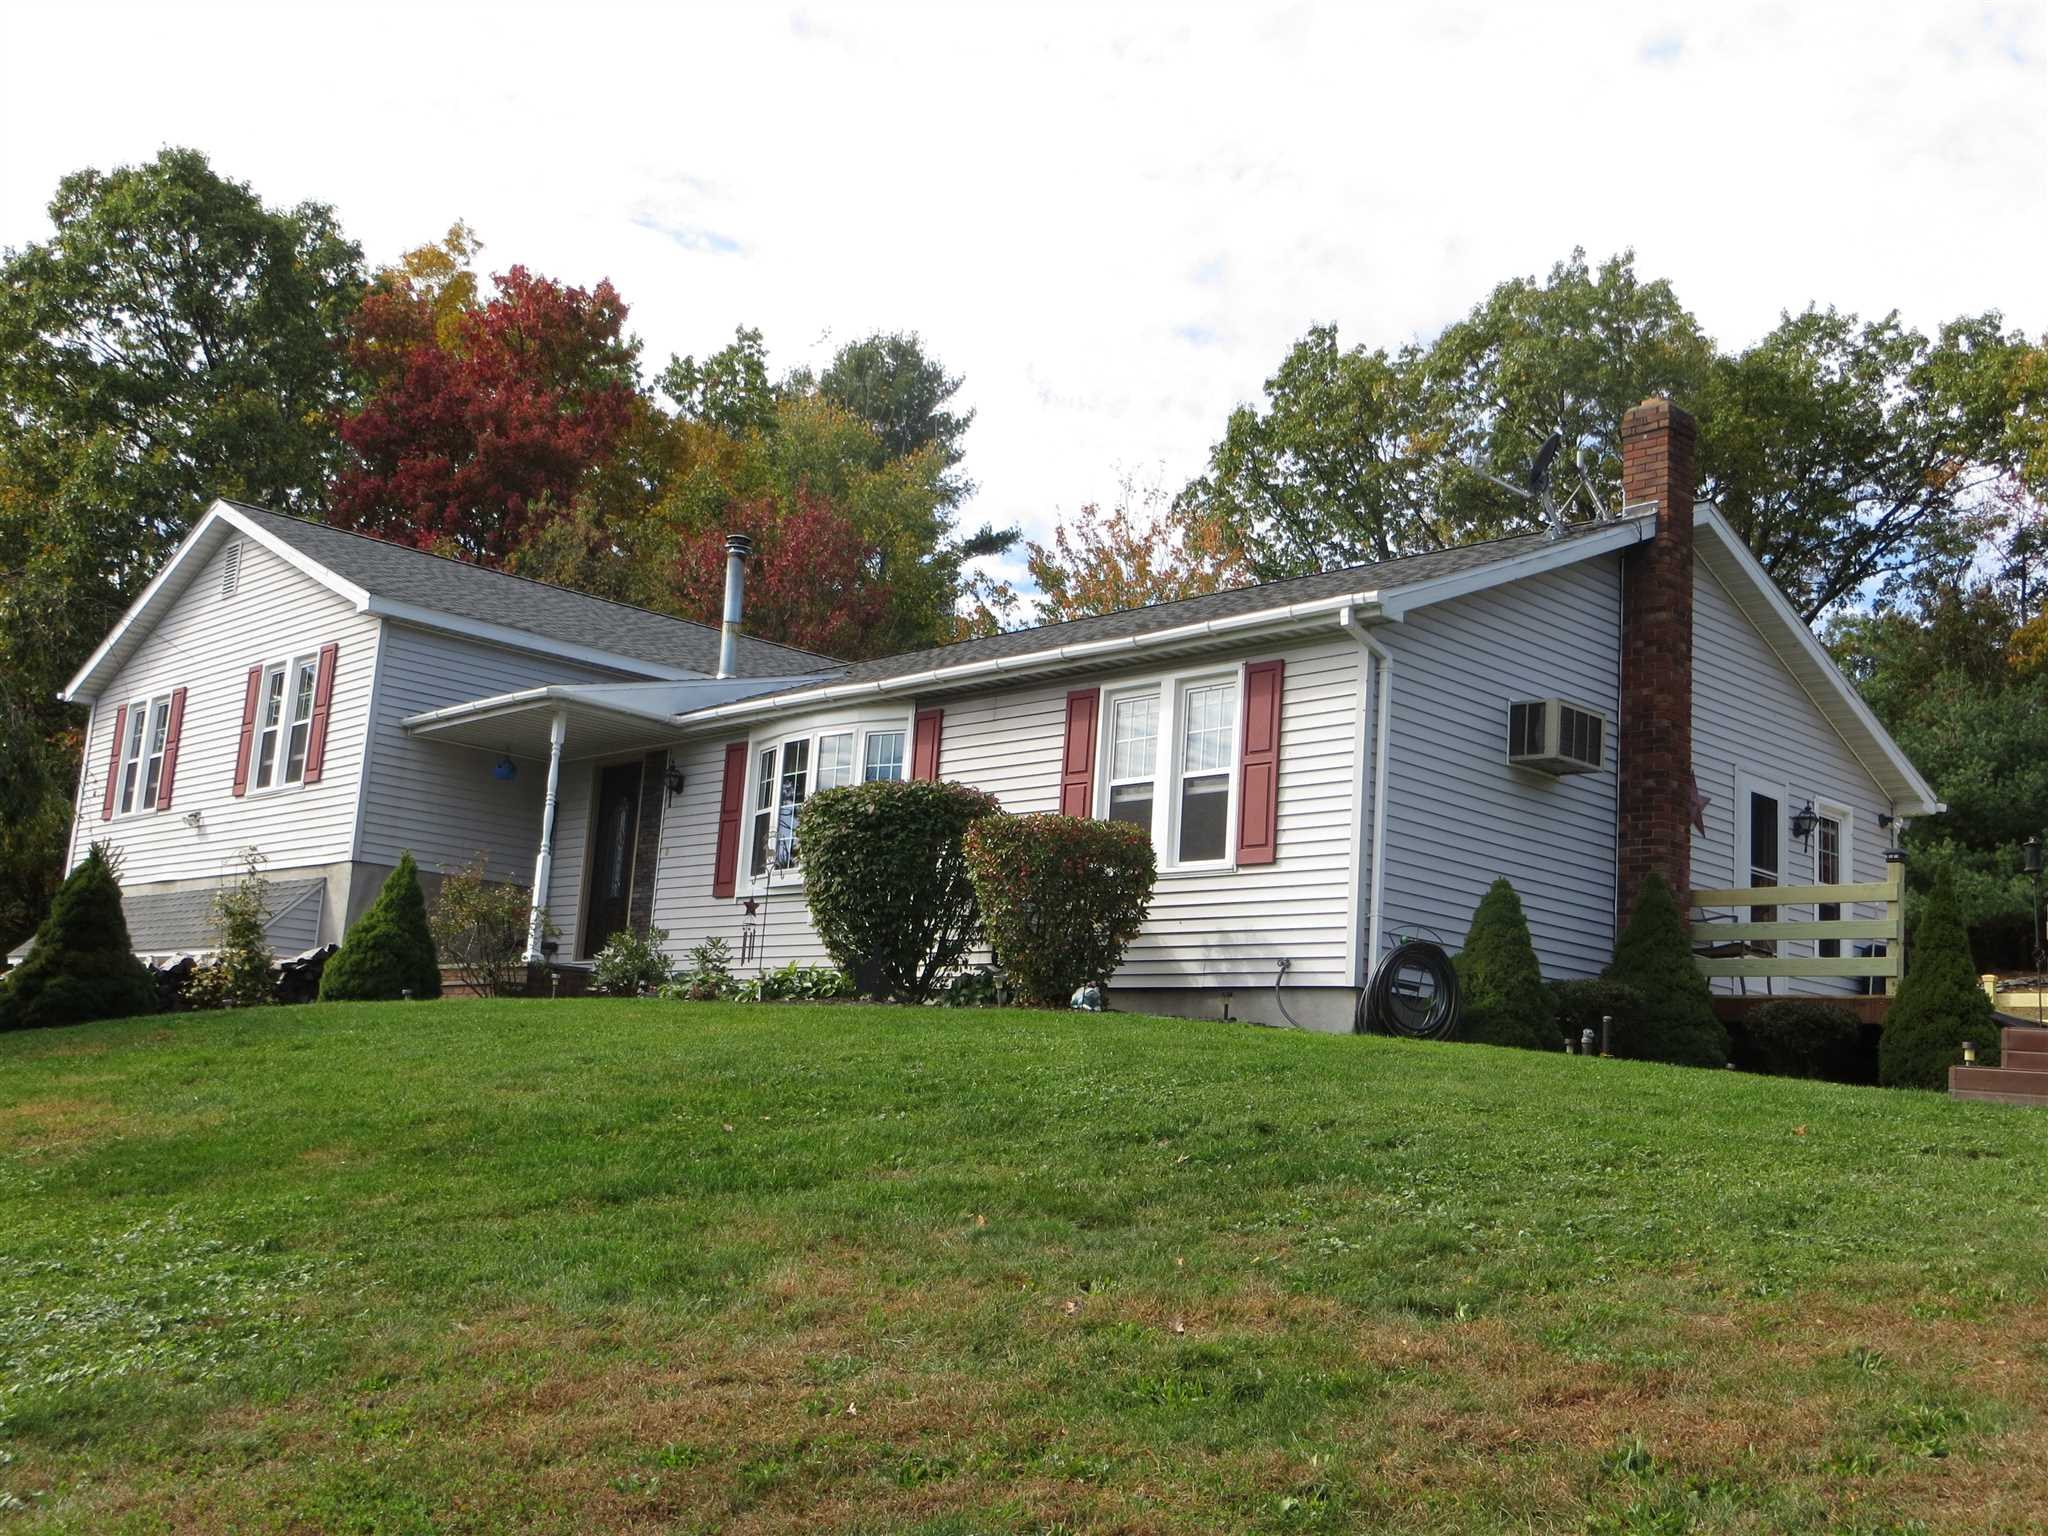 Single Family Home for Sale at 53 HULL ROAD (B) 53 HULL ROAD (B) Gallatin, New York 12523 United States